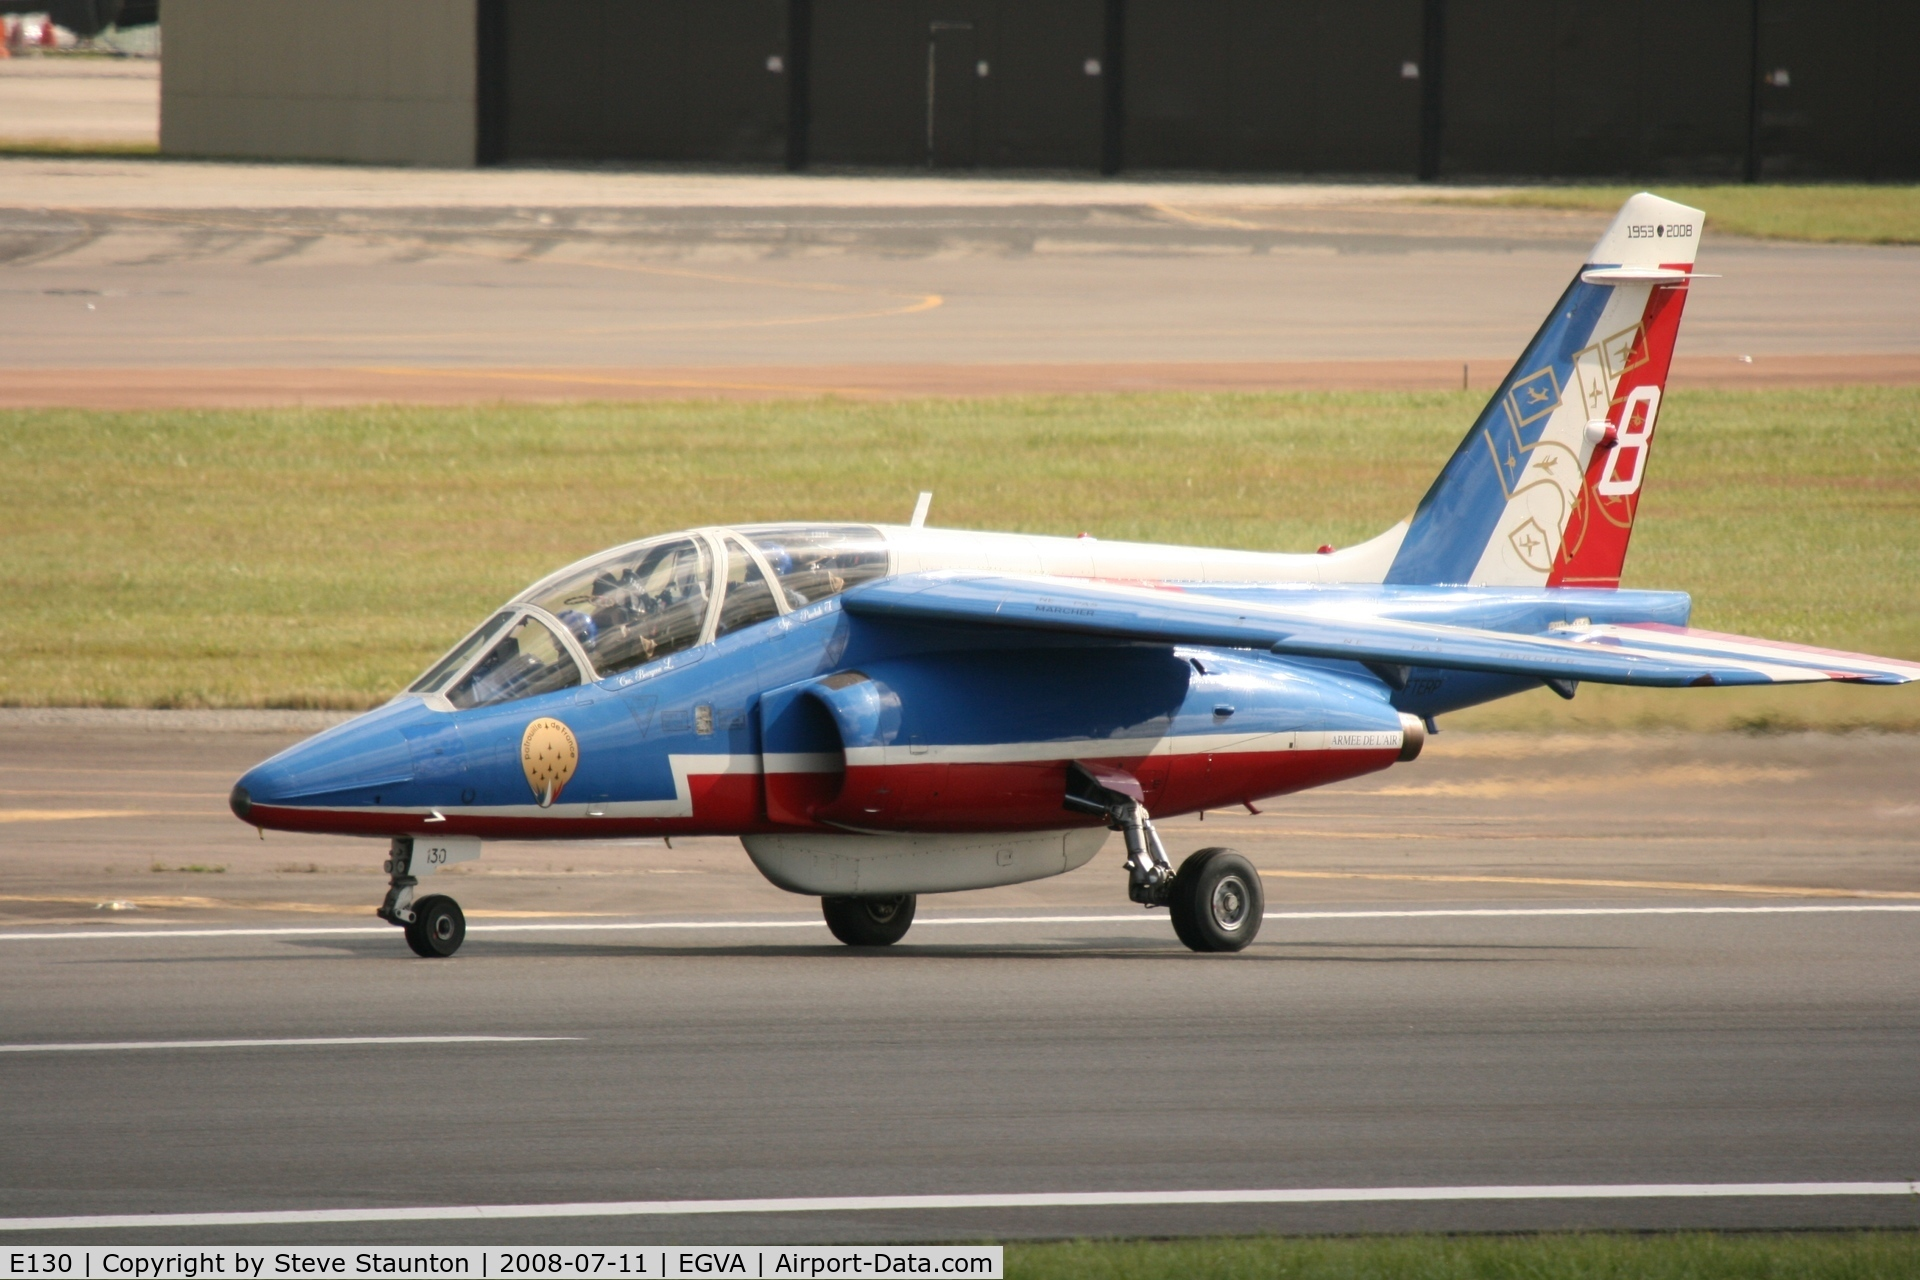 E130, Dassault-Dornier Alpha Jet E C/N E130, Taken at the Royal International Air Tattoo 2008 during arrivals and departures (show days cancelled due to bad weather)